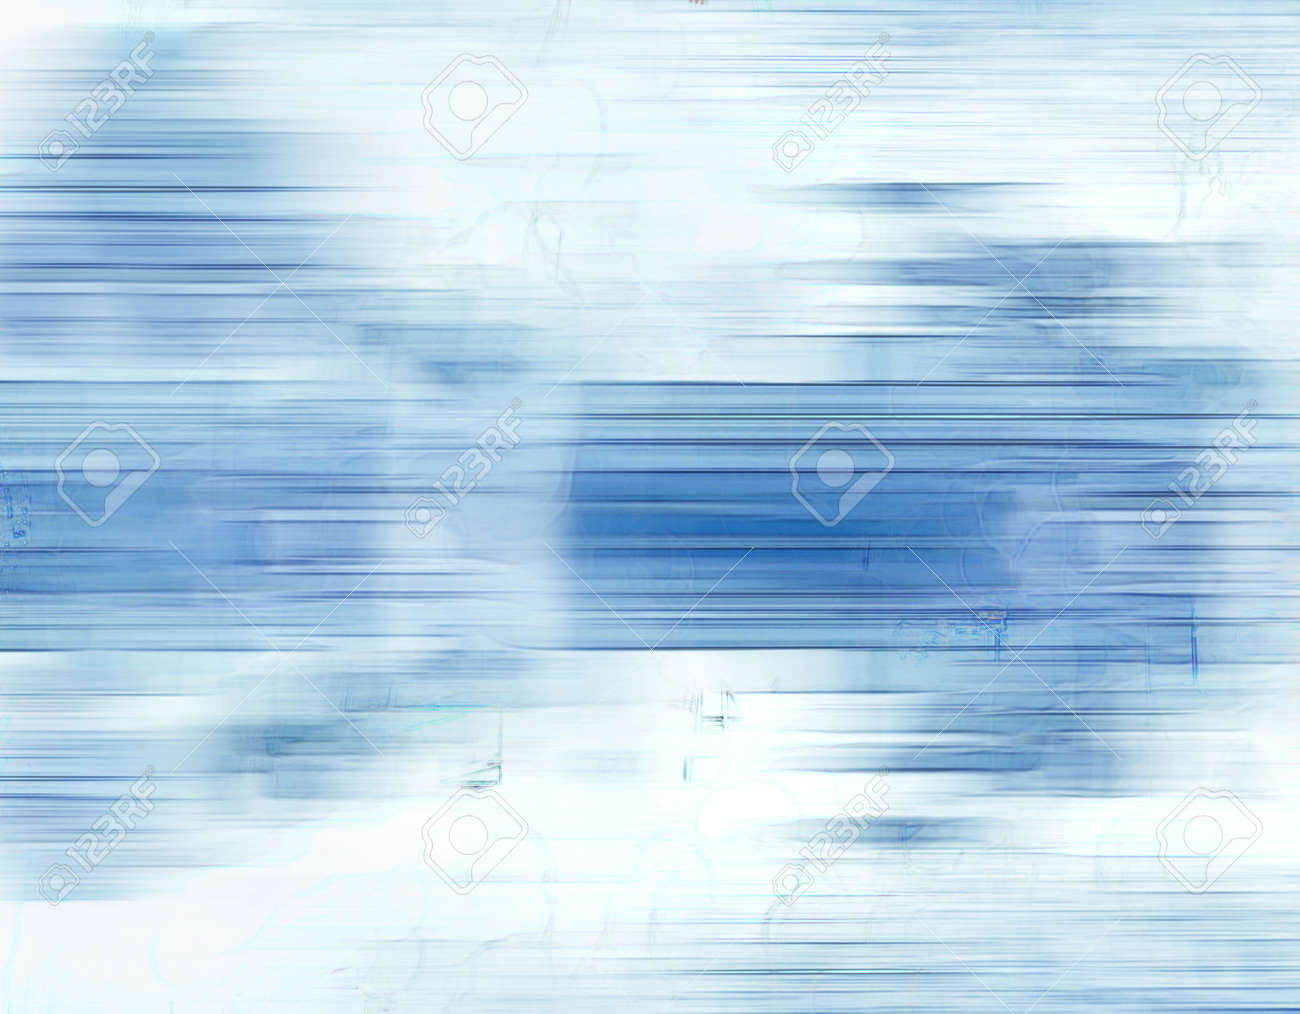 Texture with blue lines in motion, light tones, could be useful as a background. - 9514724